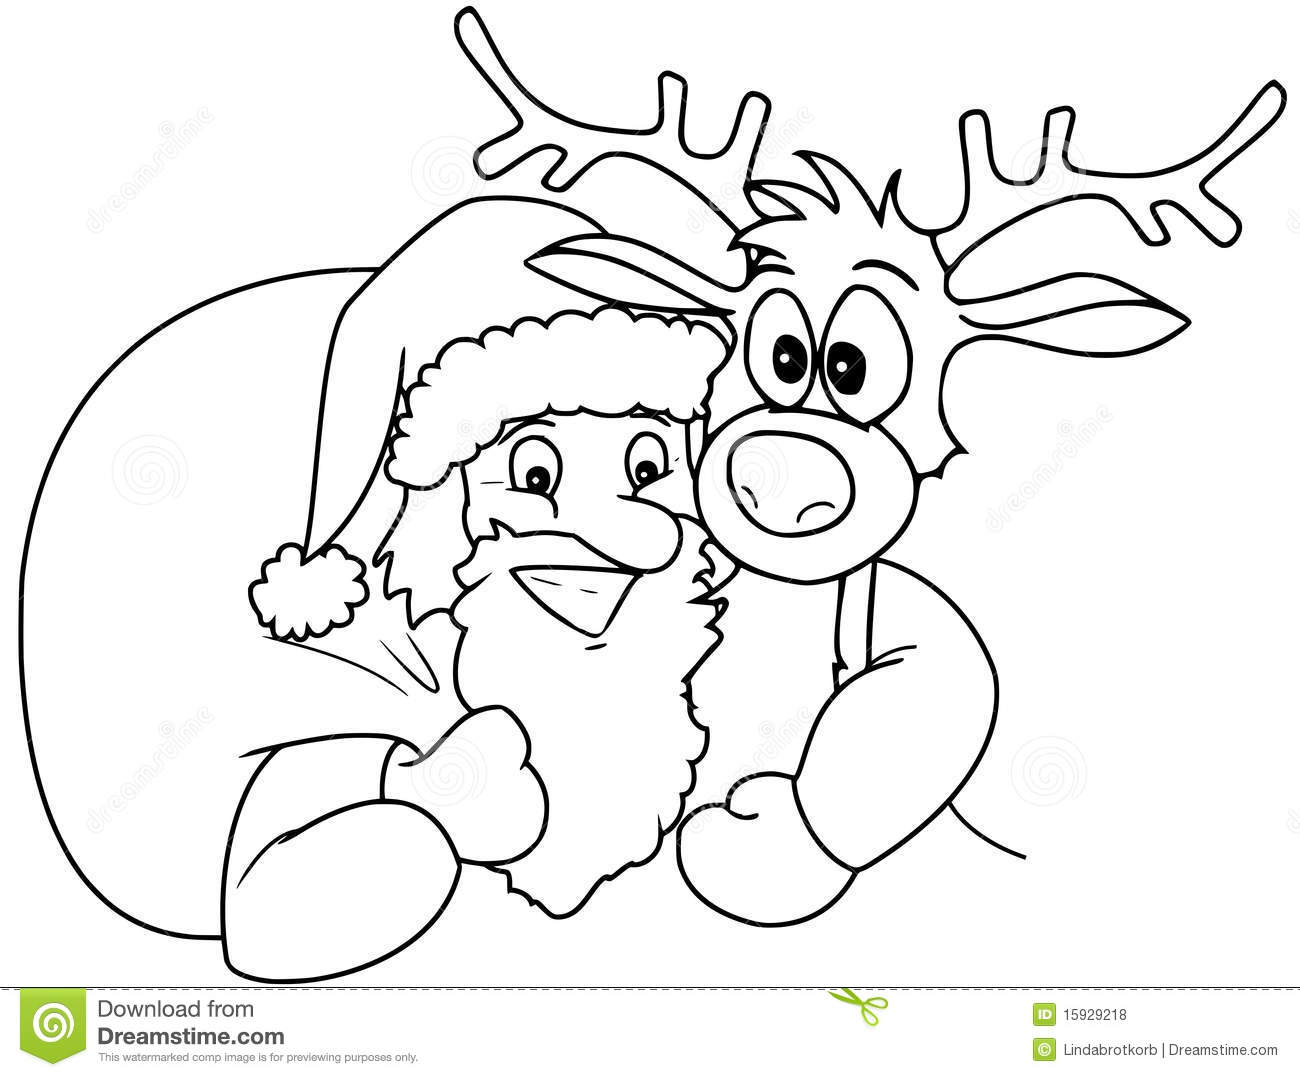 santa ruldolph coloring pages - photo#21